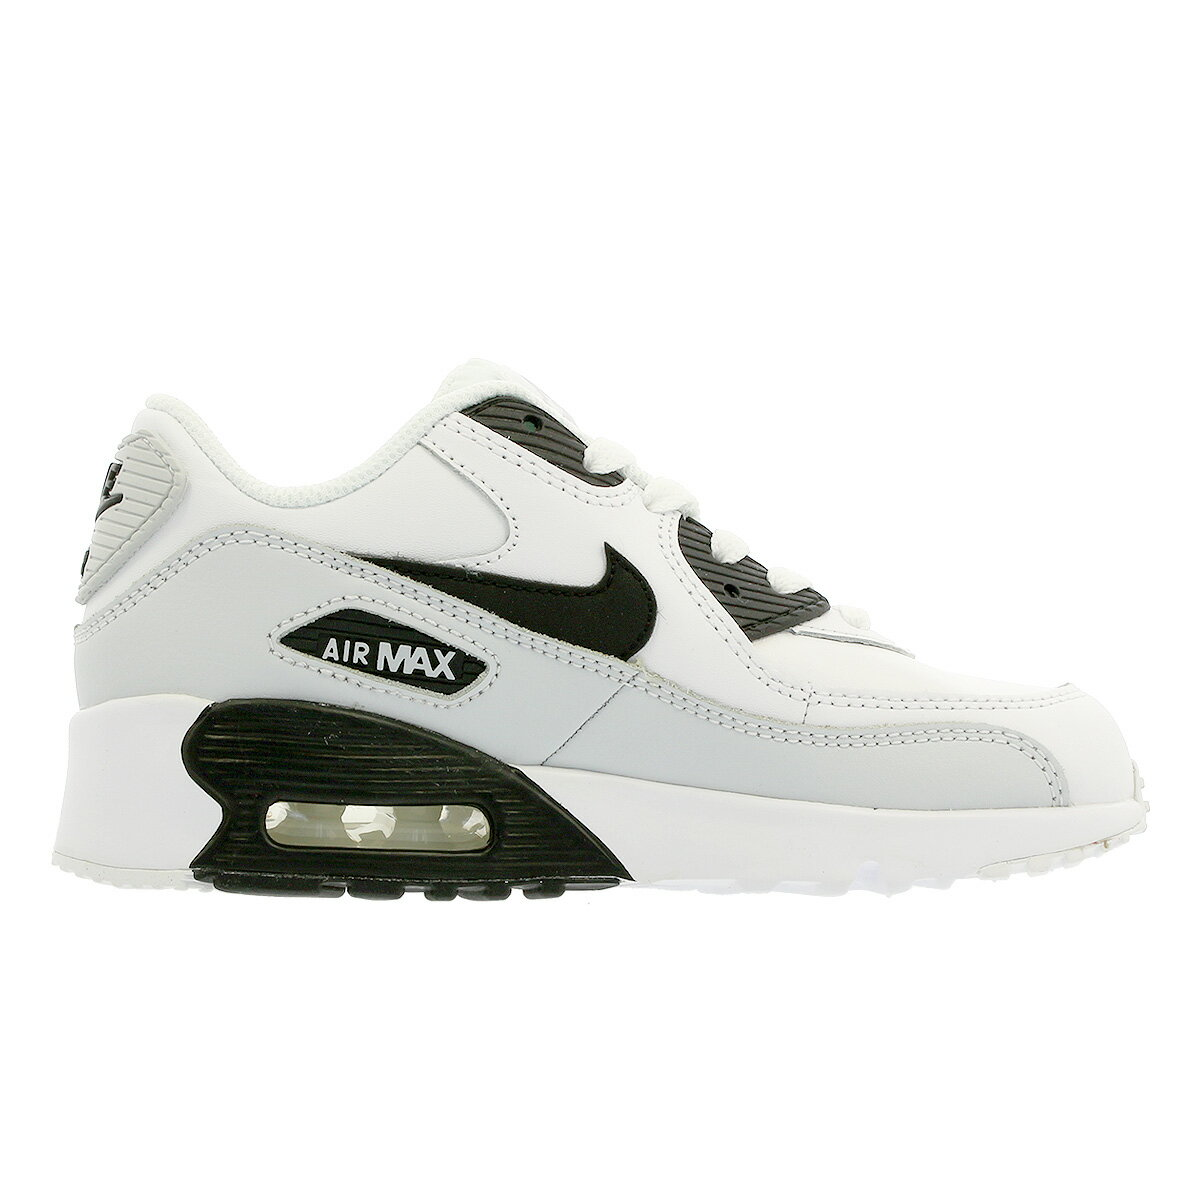 NIKE AIR MAX 90 LTR PS Kie Ney AMAX 90 leather PS WHITEBLACKPR PLATINUMWHITE 833,414 104